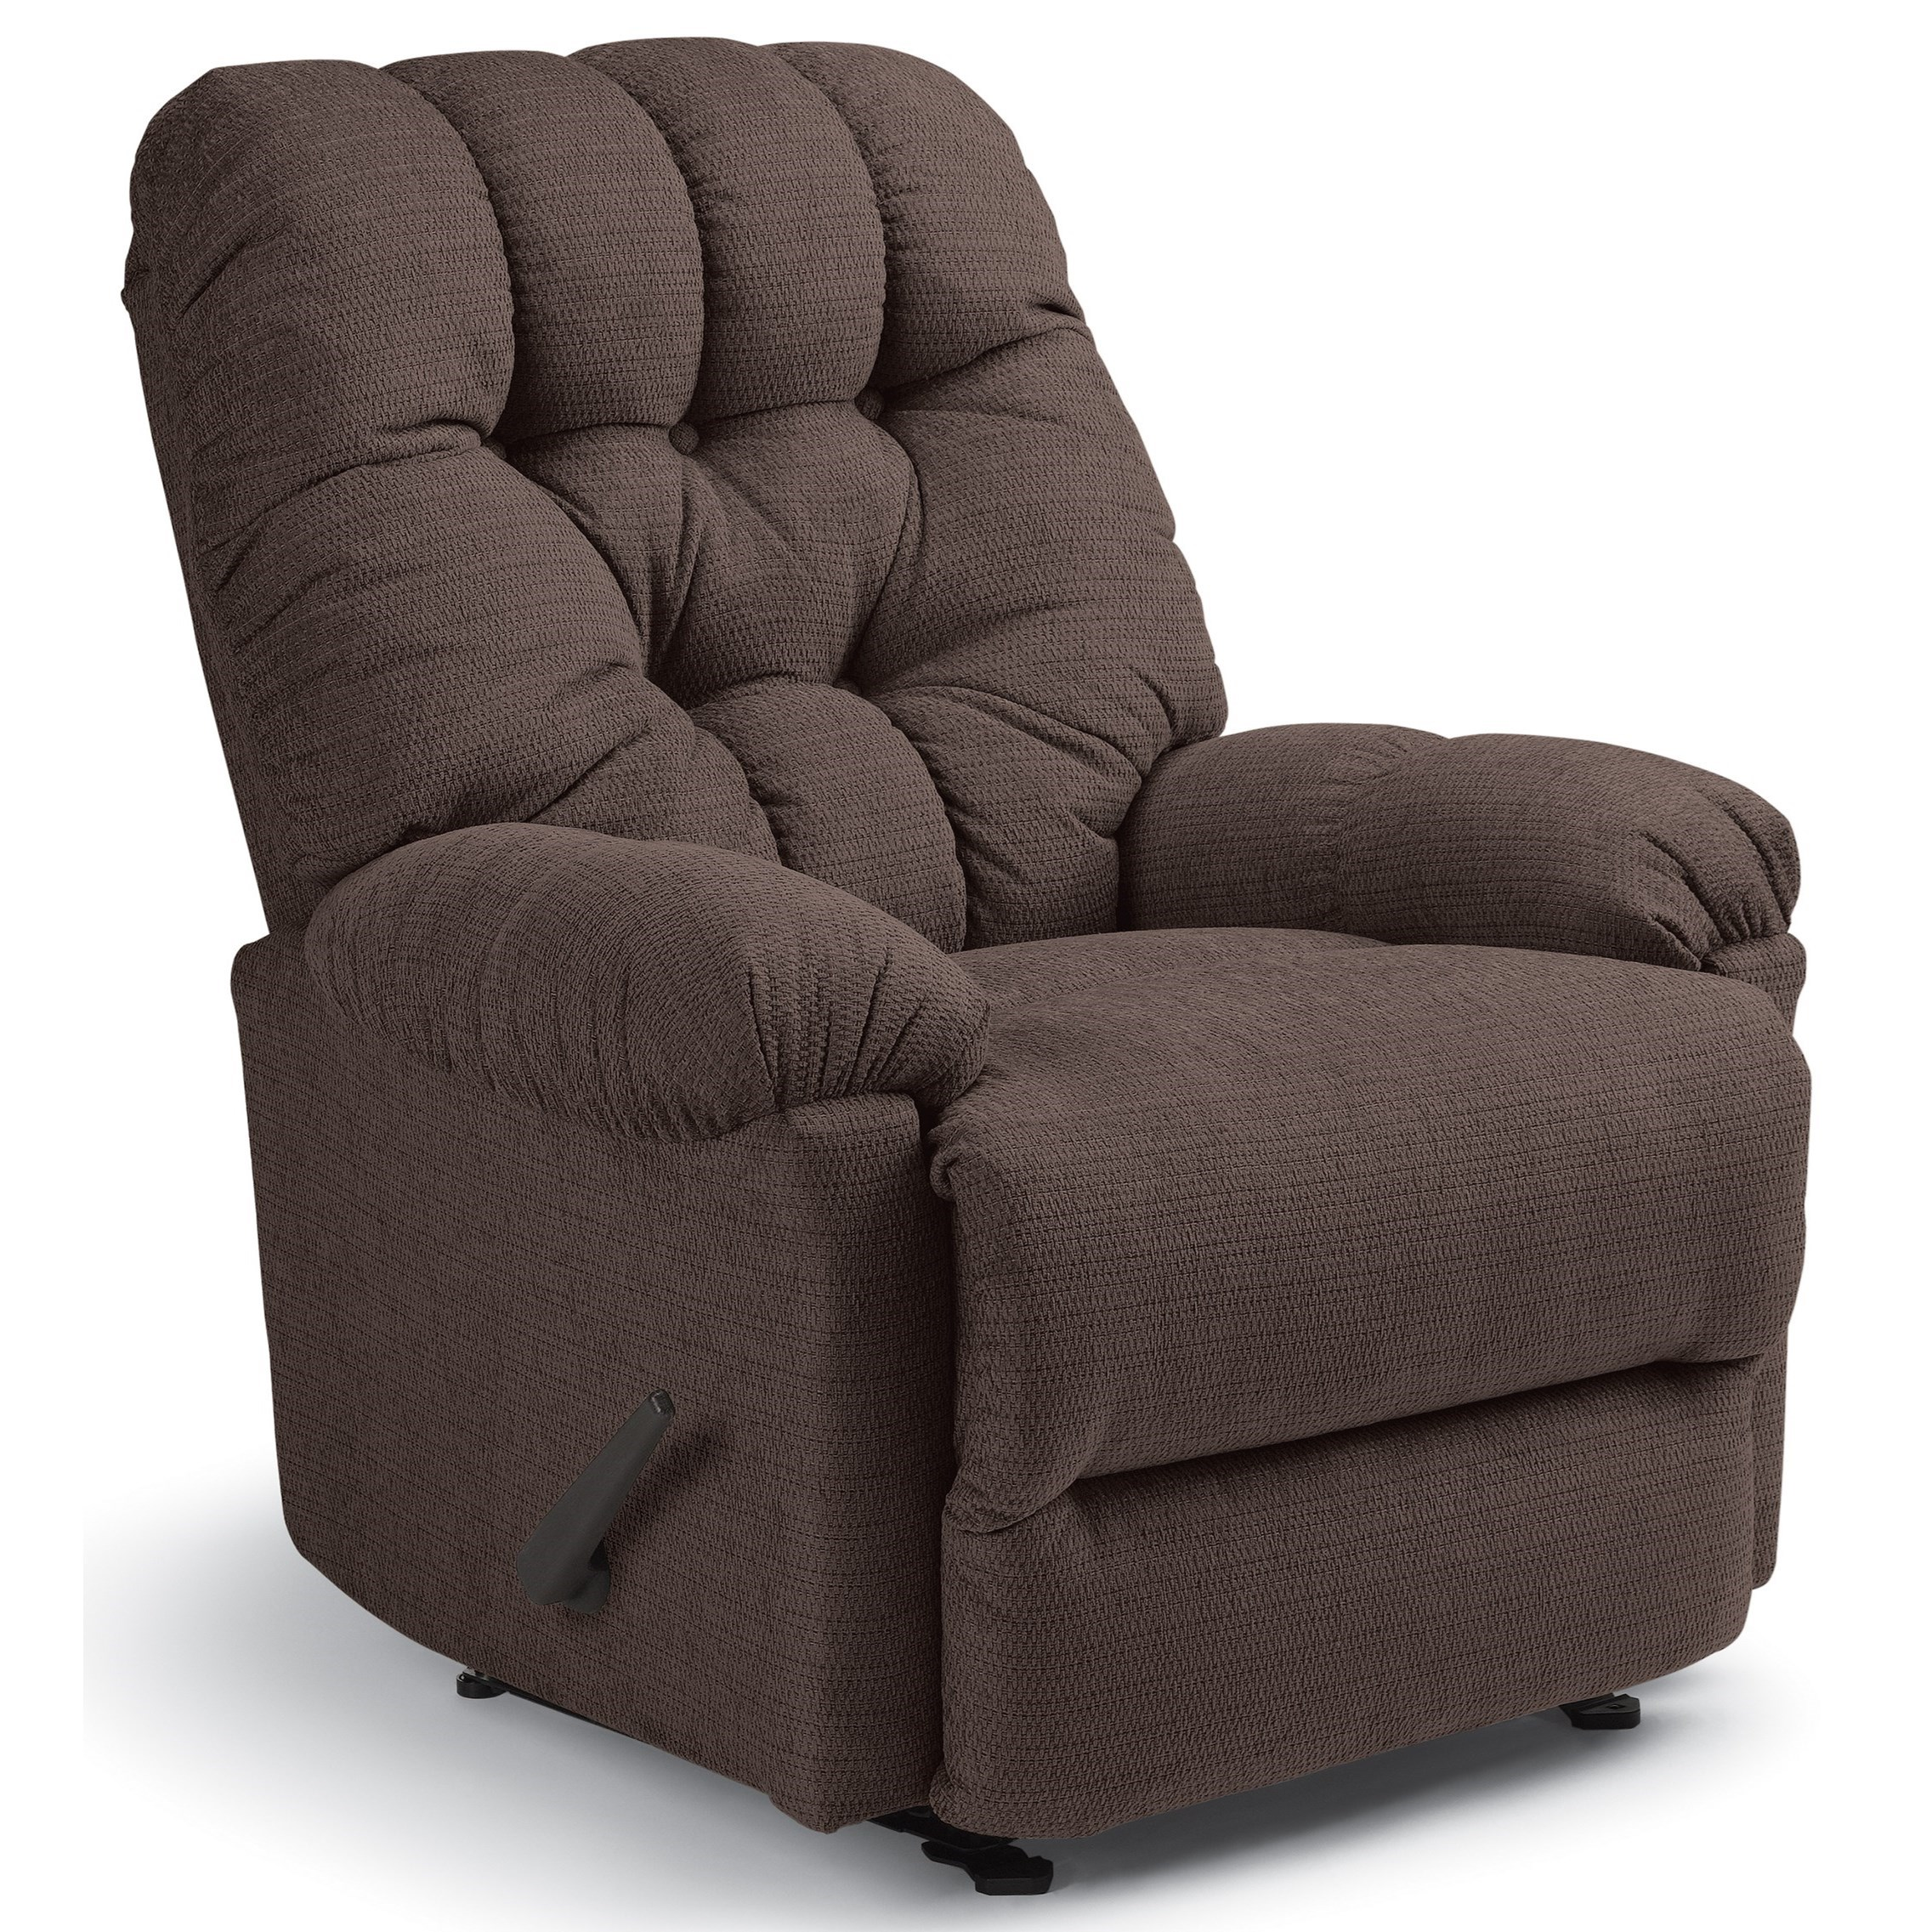 Raider Raider Rocker Recliner by Best Home Furnishings at Baer's Furniture